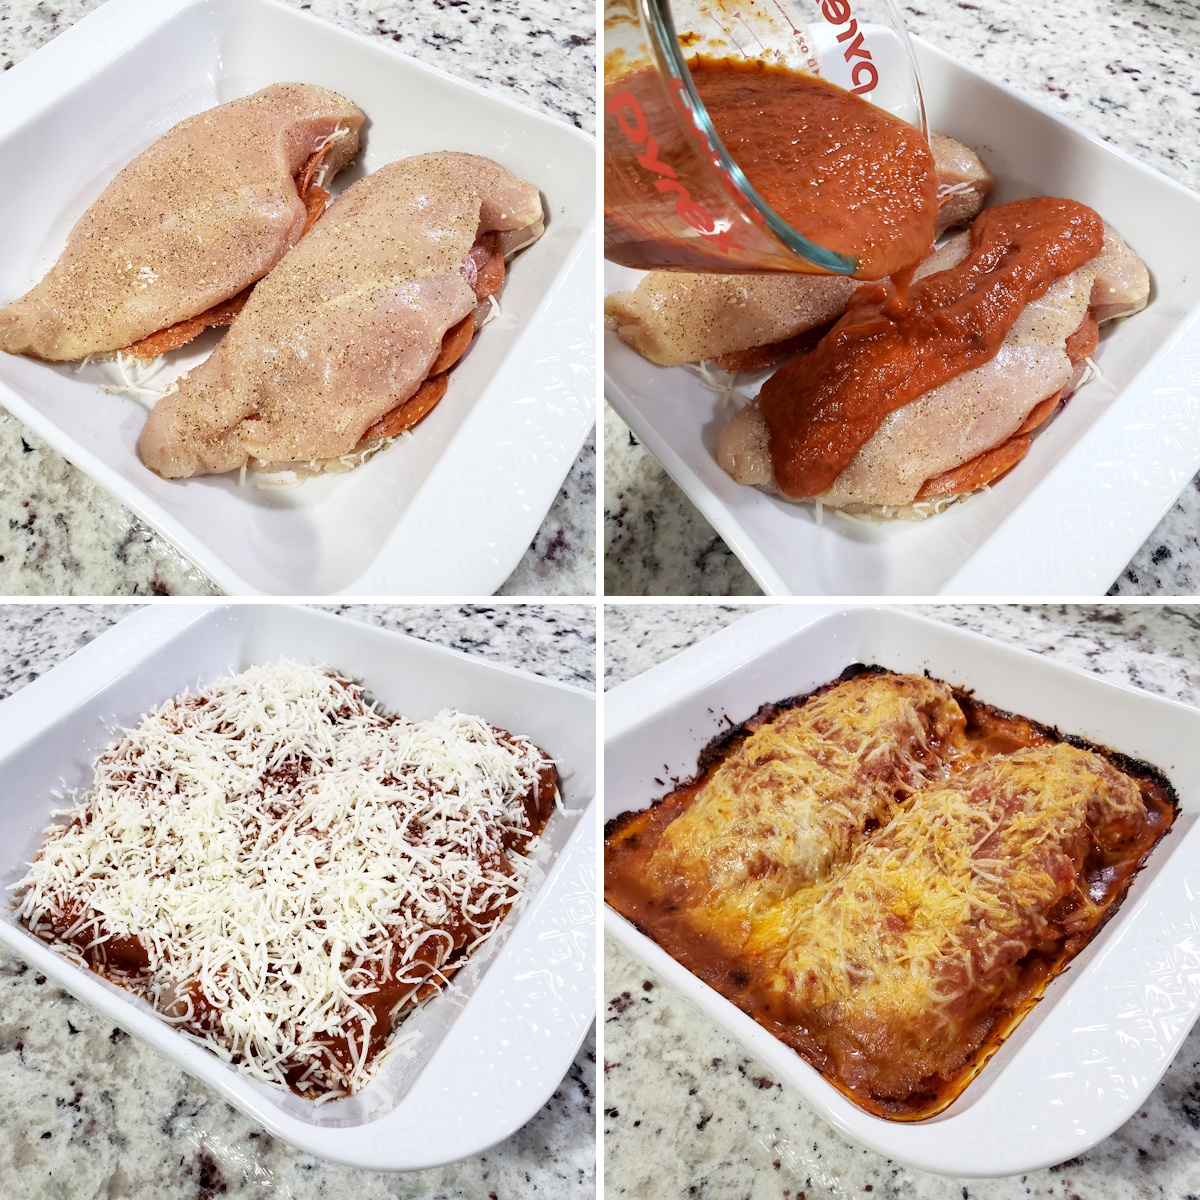 Baking dish with chicken breasts.